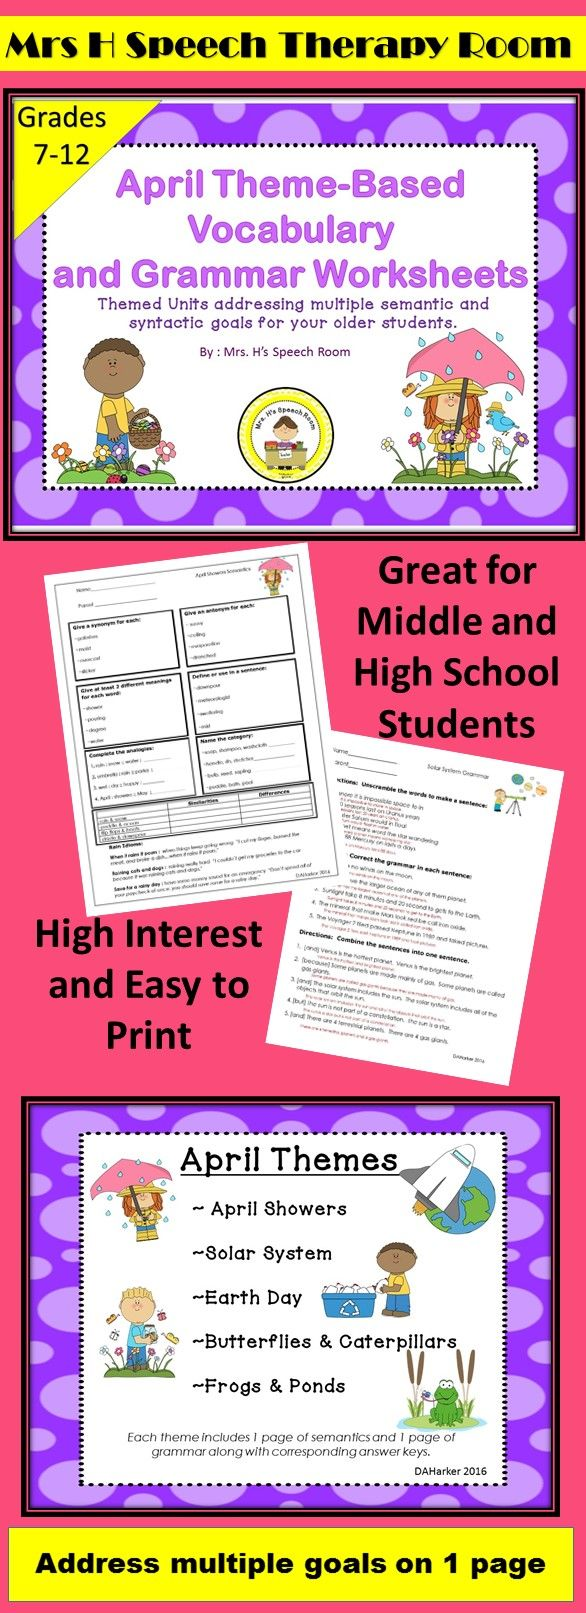 Pin By Mrs H S Speech Therapy Room On High School And Middle School Speech April Speech Therapy Speech Therapy Themes School Speech Therapy [ 1613 x 586 Pixel ]